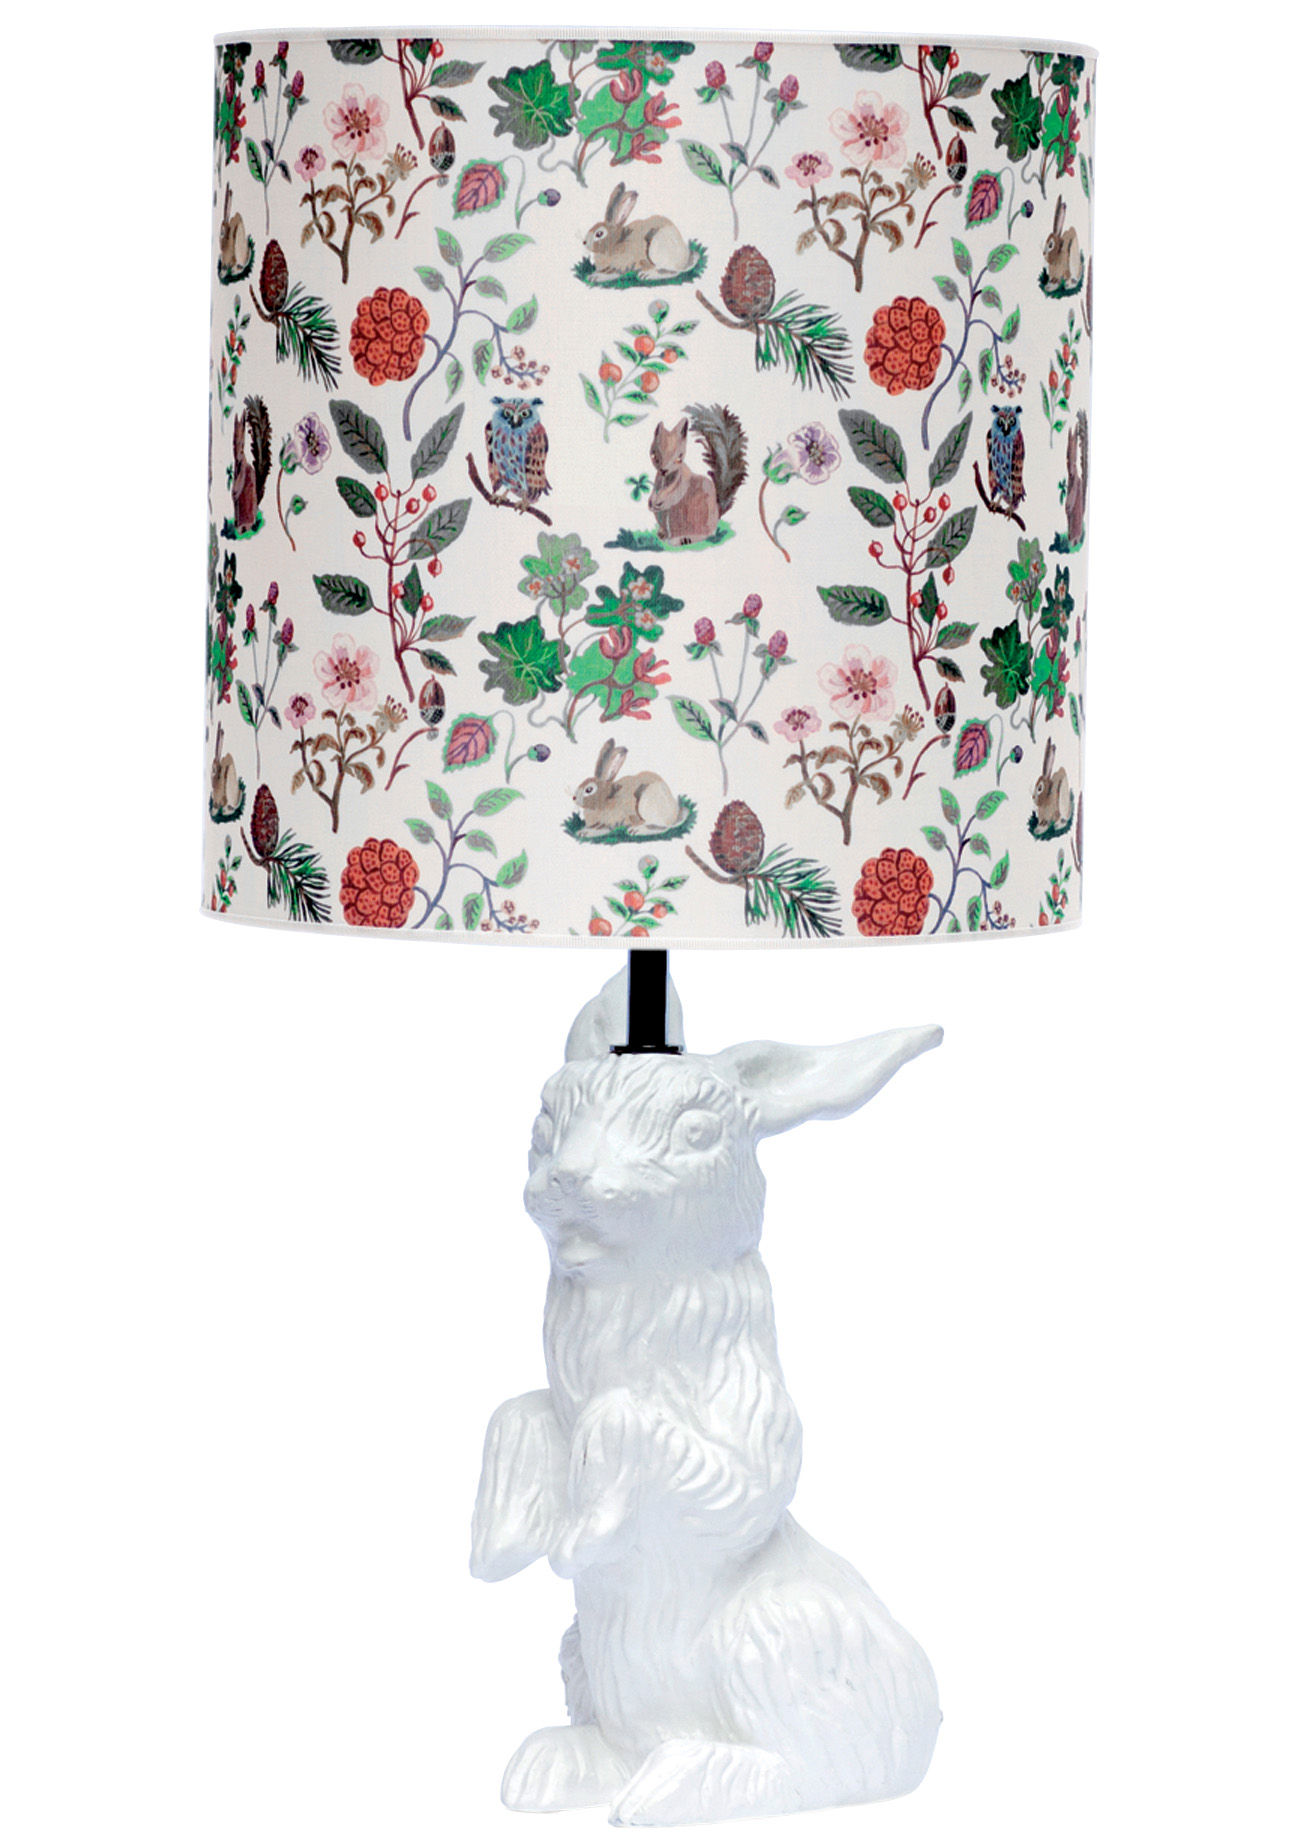 Decoration - Children's Home Accessories - Jeannot Lapin Table lamp - With printed lampshade by Domestic - White rabbit - Autumn shade - Enamled terracotta, Silkscreen printed cotton